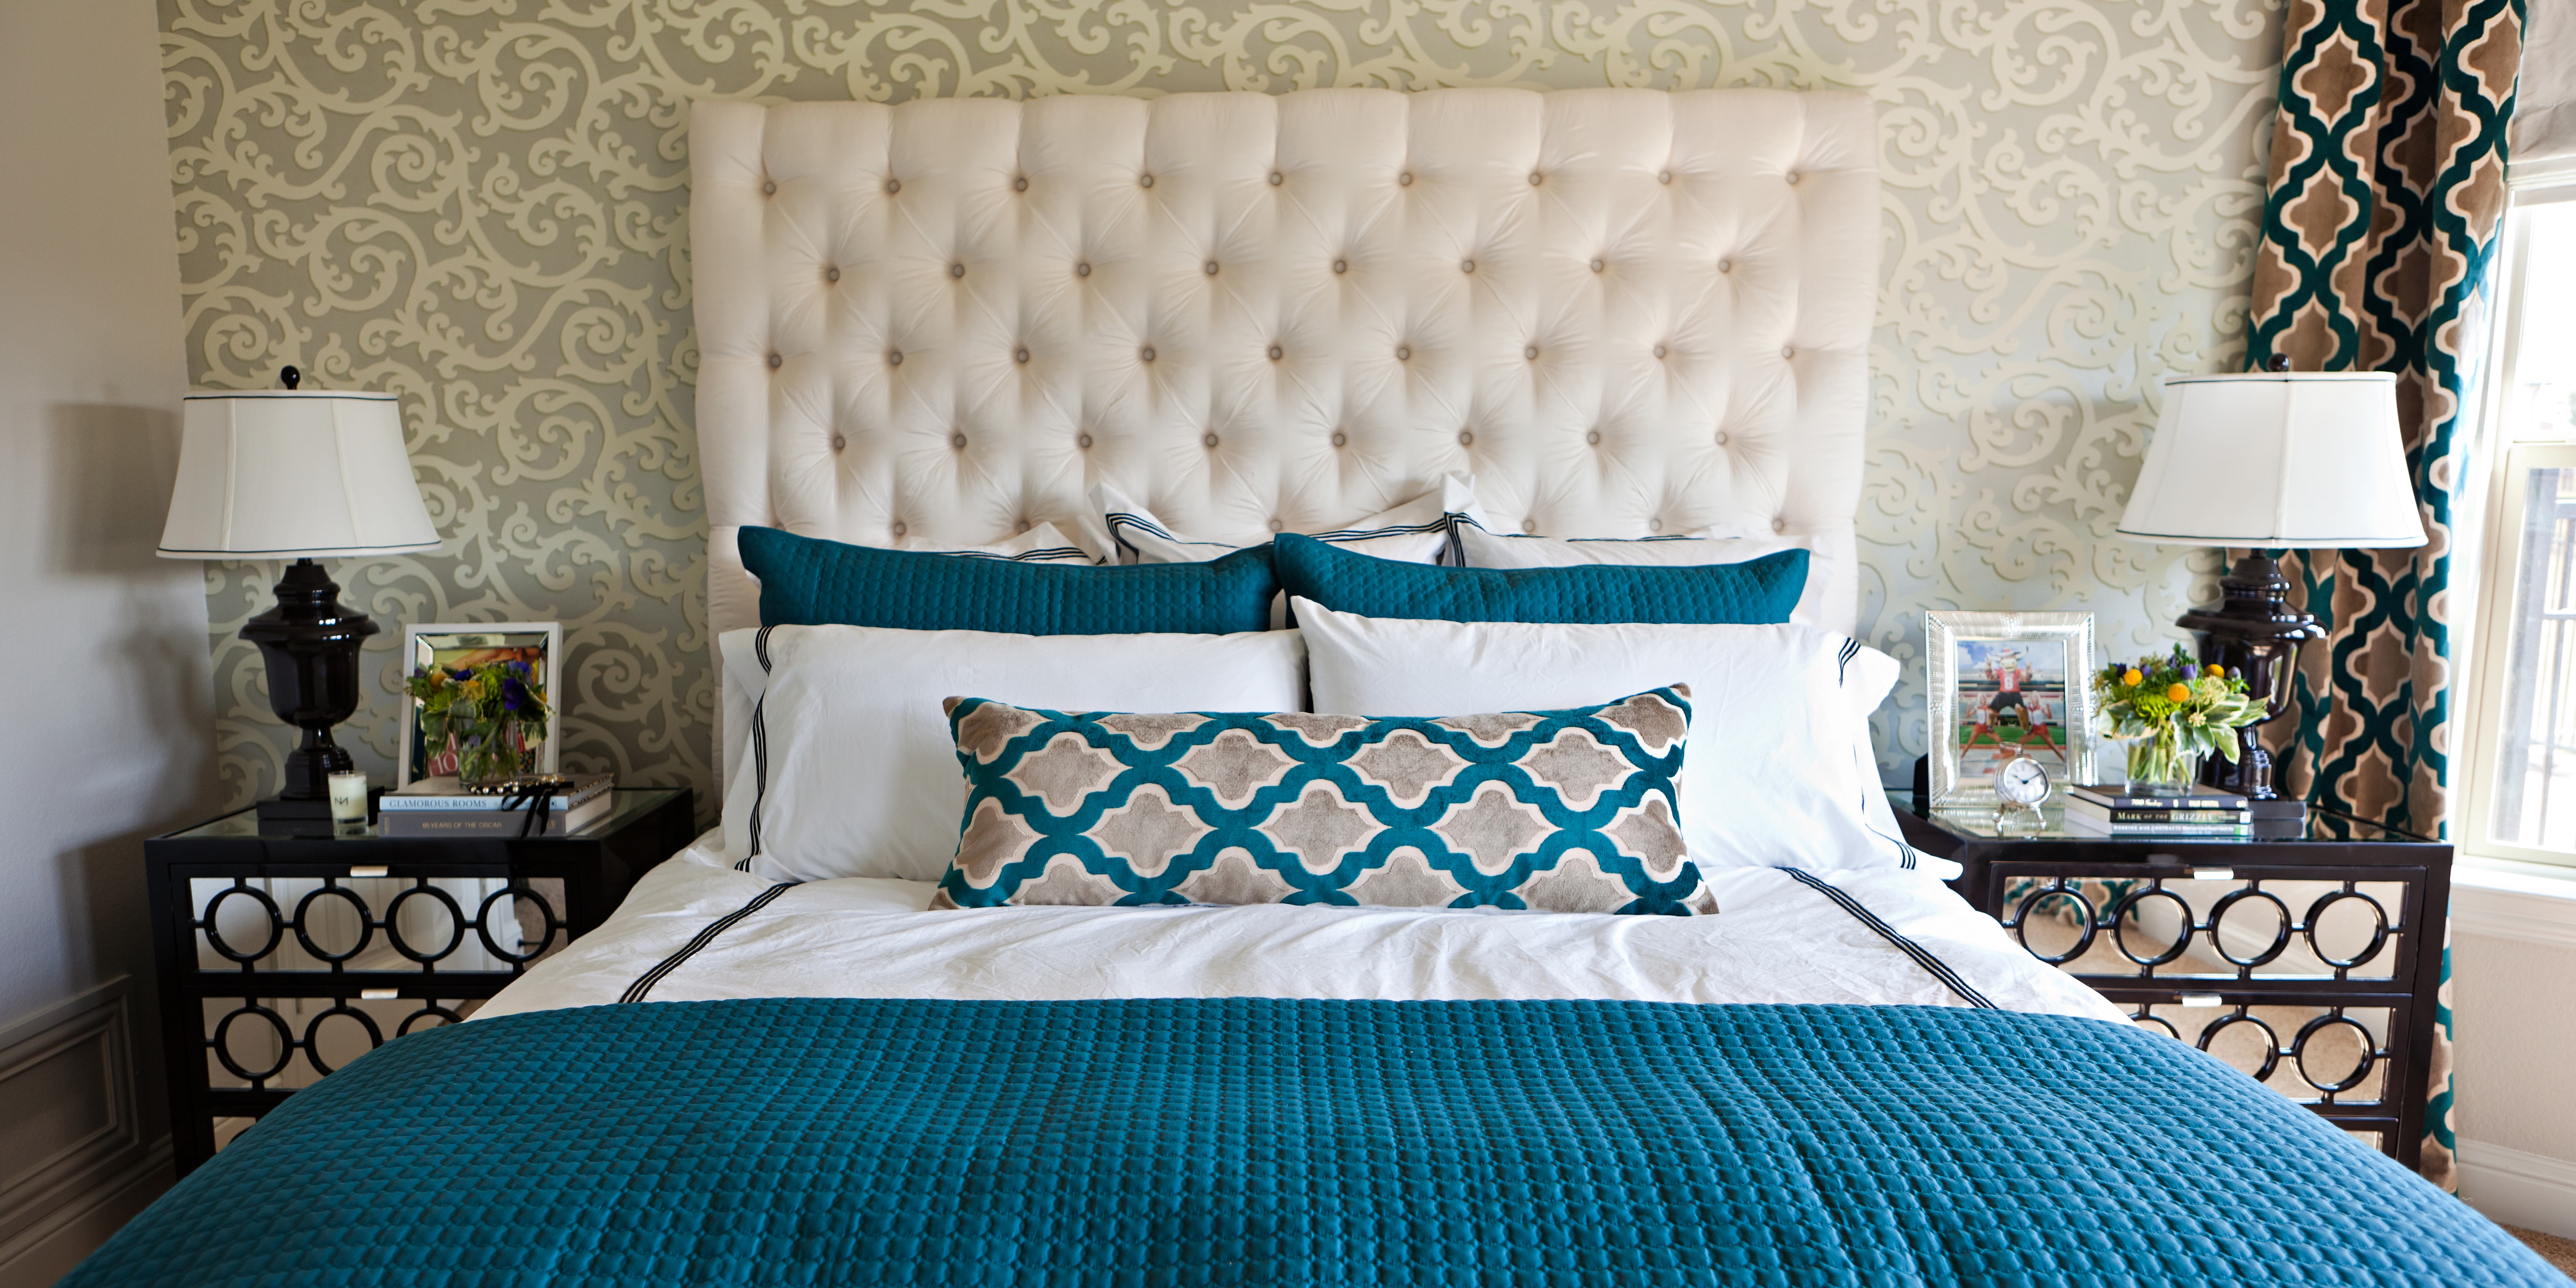 Cool Teal Home Decor For Spring And Summer